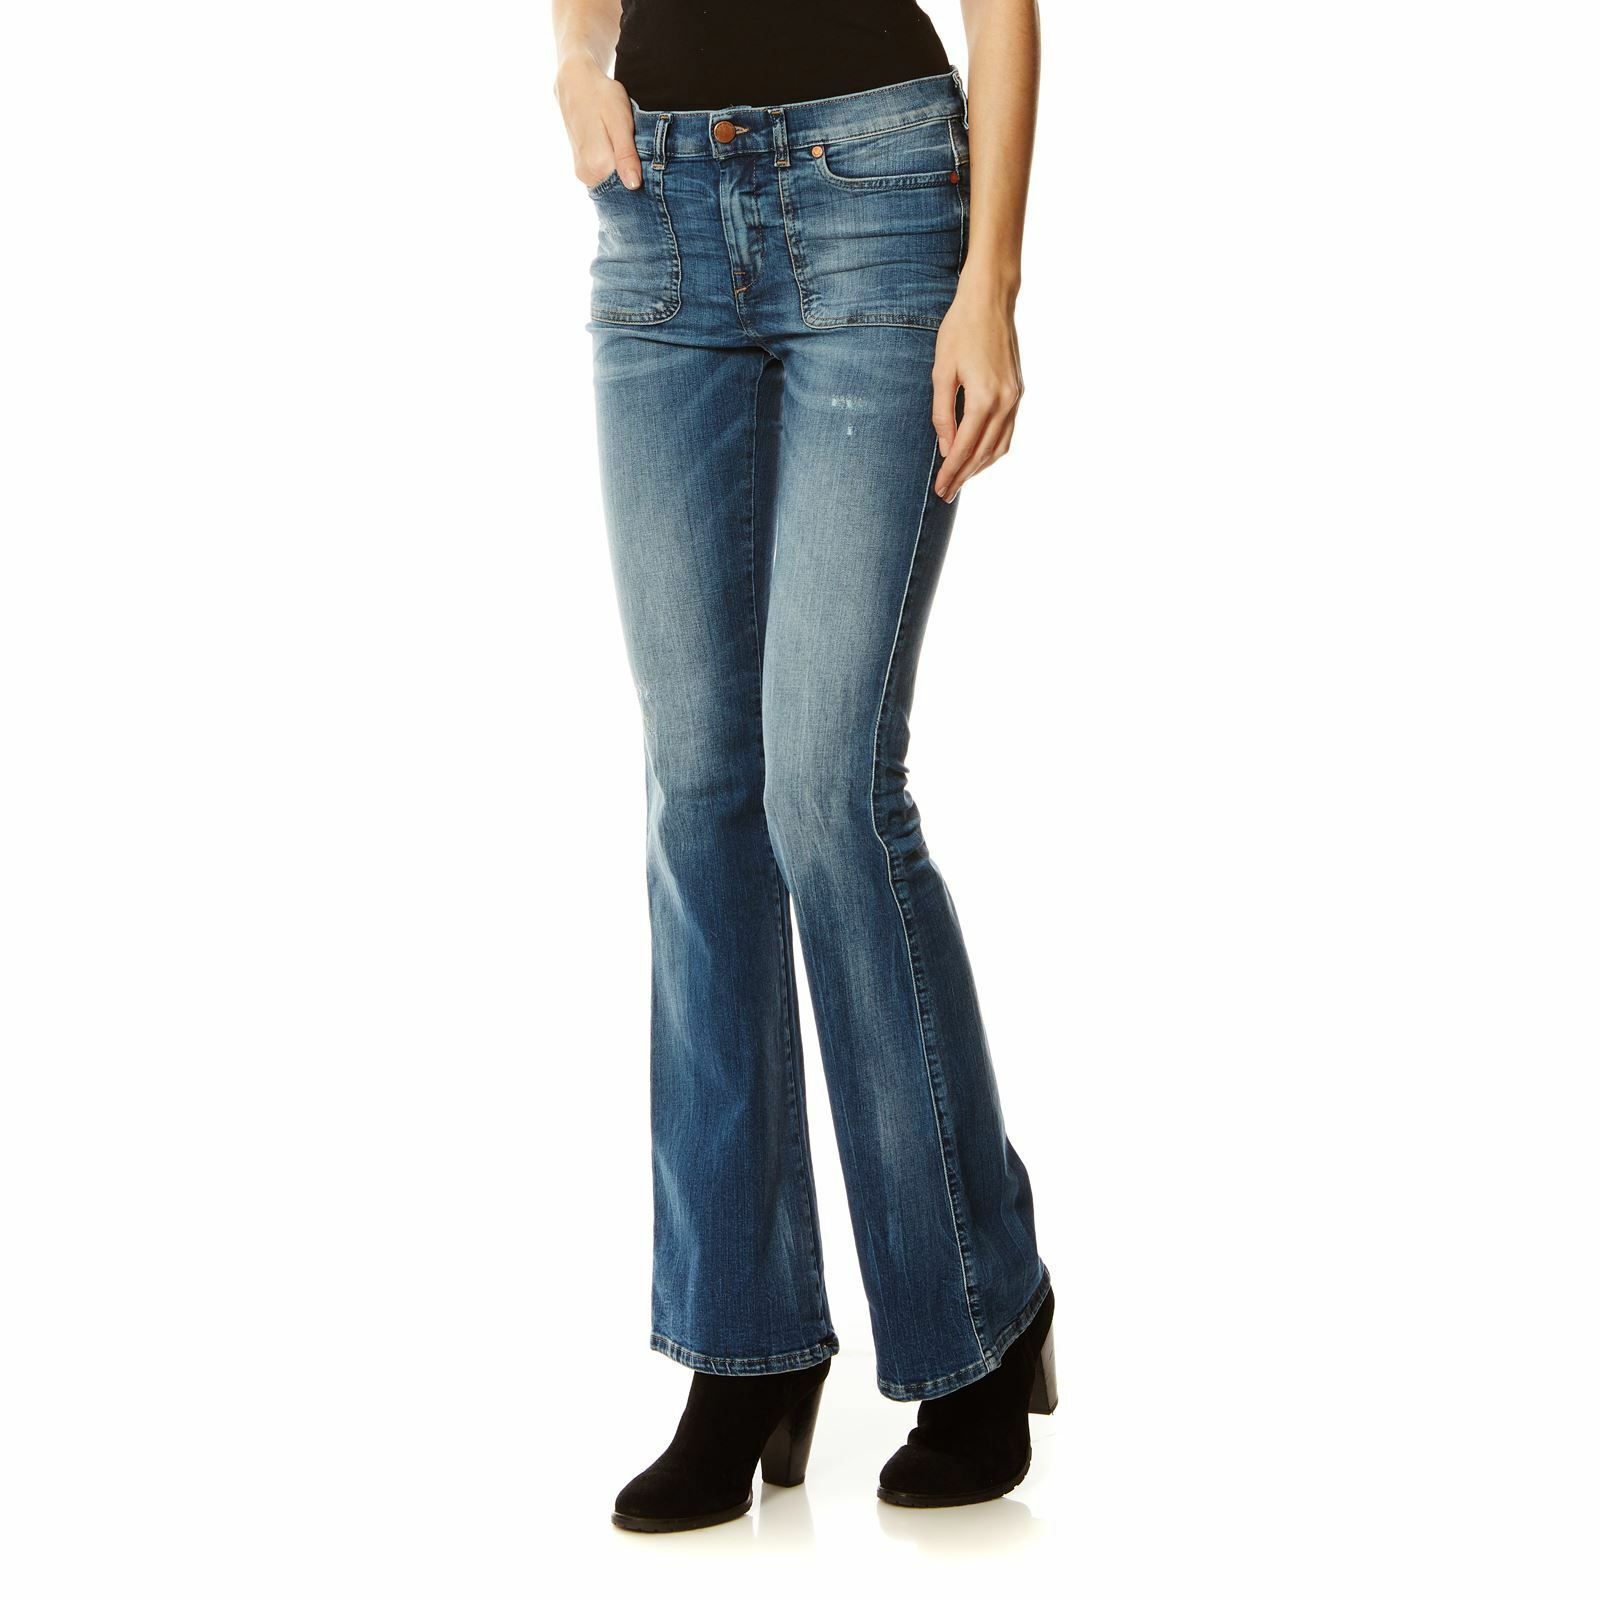 285 Authentic DIESEL Women's Distressed Faded Bootcut Fit Sandyb-Patch Jeans